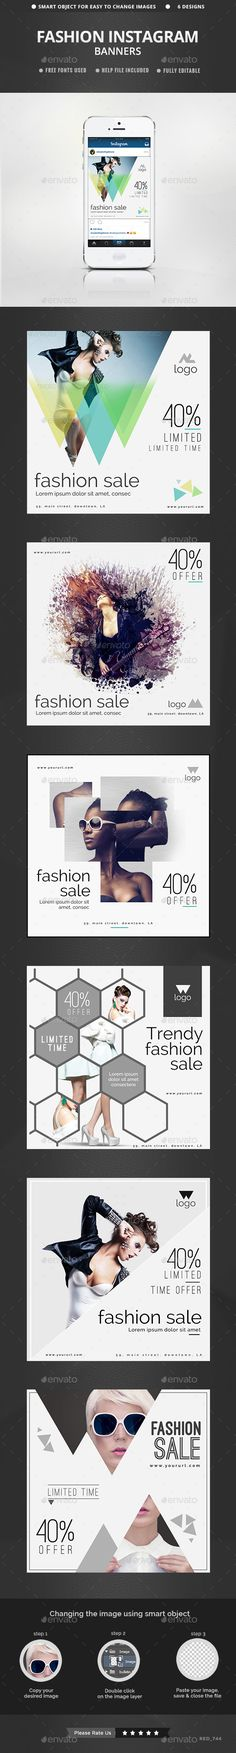 Fashion Instagram Templates - 6 Designs PSD #design #ads Download: http://graphicriver.net/item/fashion-instagram-templates-6-designs/13240525?ref=ksioks